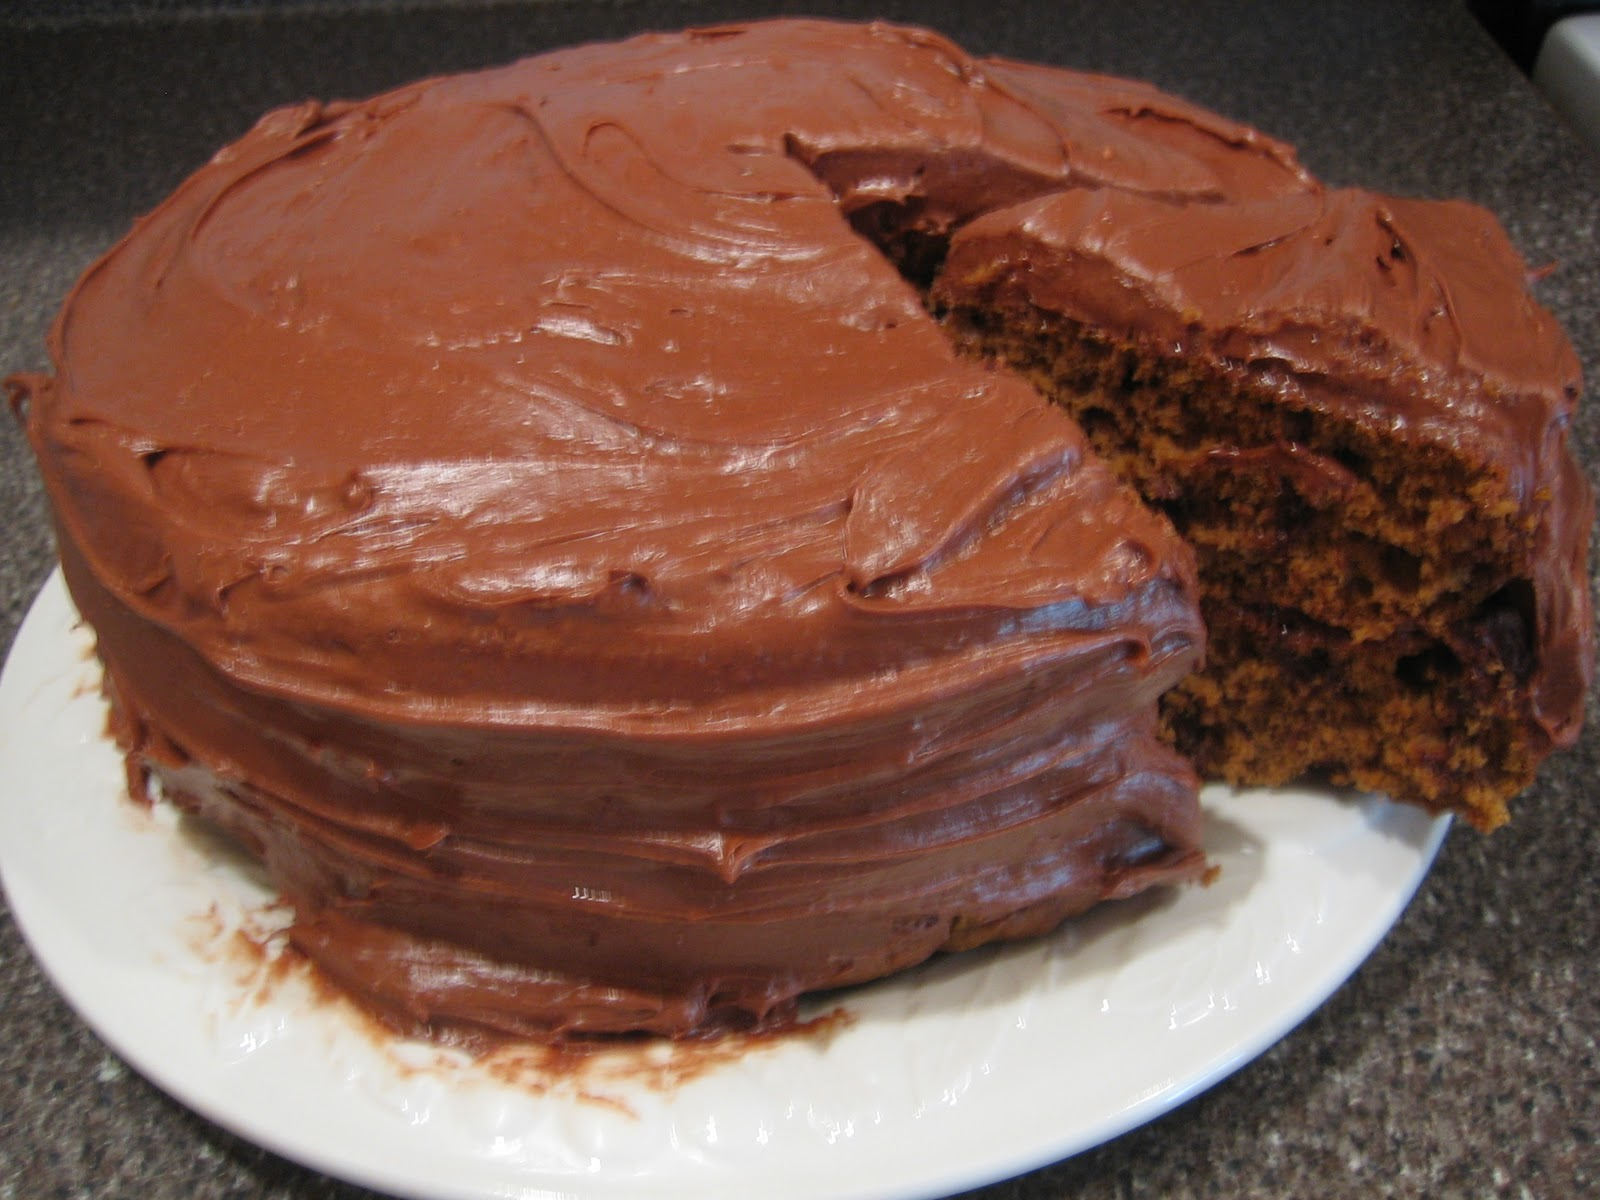 Easy Homemade Chocolate Cake Recipe And The Best: Semi-Homemade Chocolate Pumpkin Cake With The Most Amazing